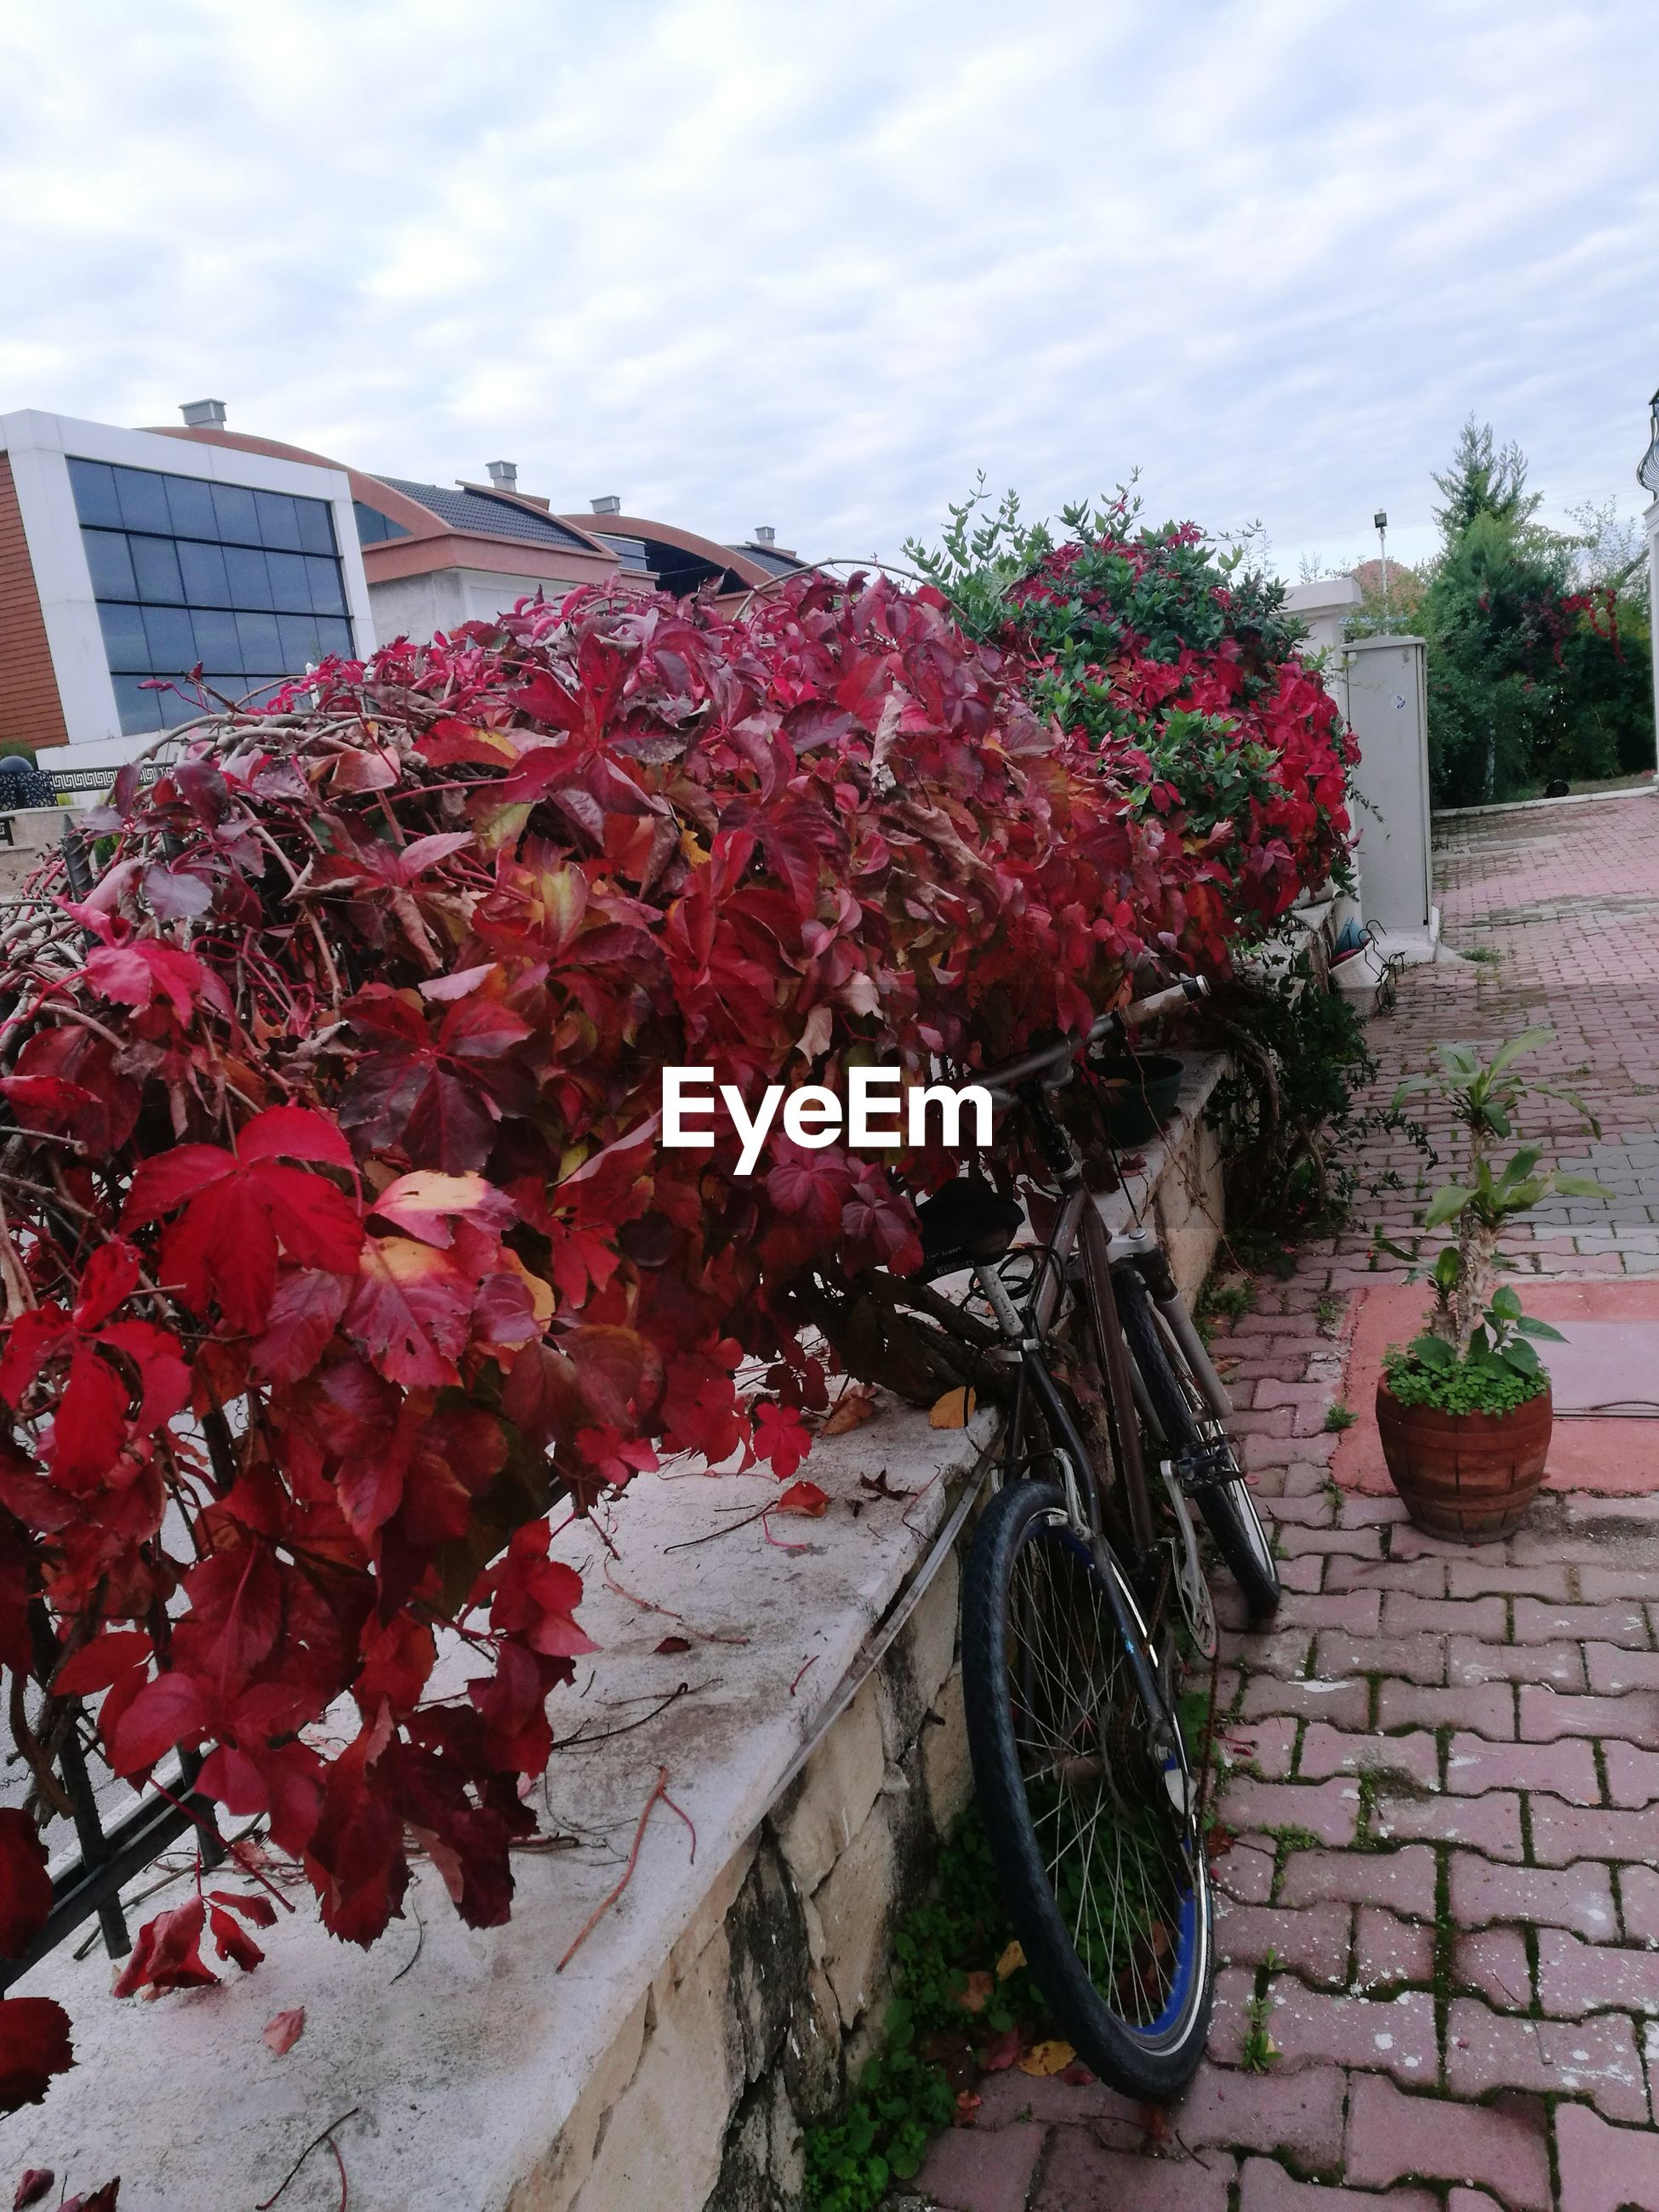 flower, bicycle, outdoors, building exterior, growth, plant, fragility, nature, built structure, day, architecture, land vehicle, beauty in nature, petal, freshness, transportation, leaf, red, no people, sky, flower head